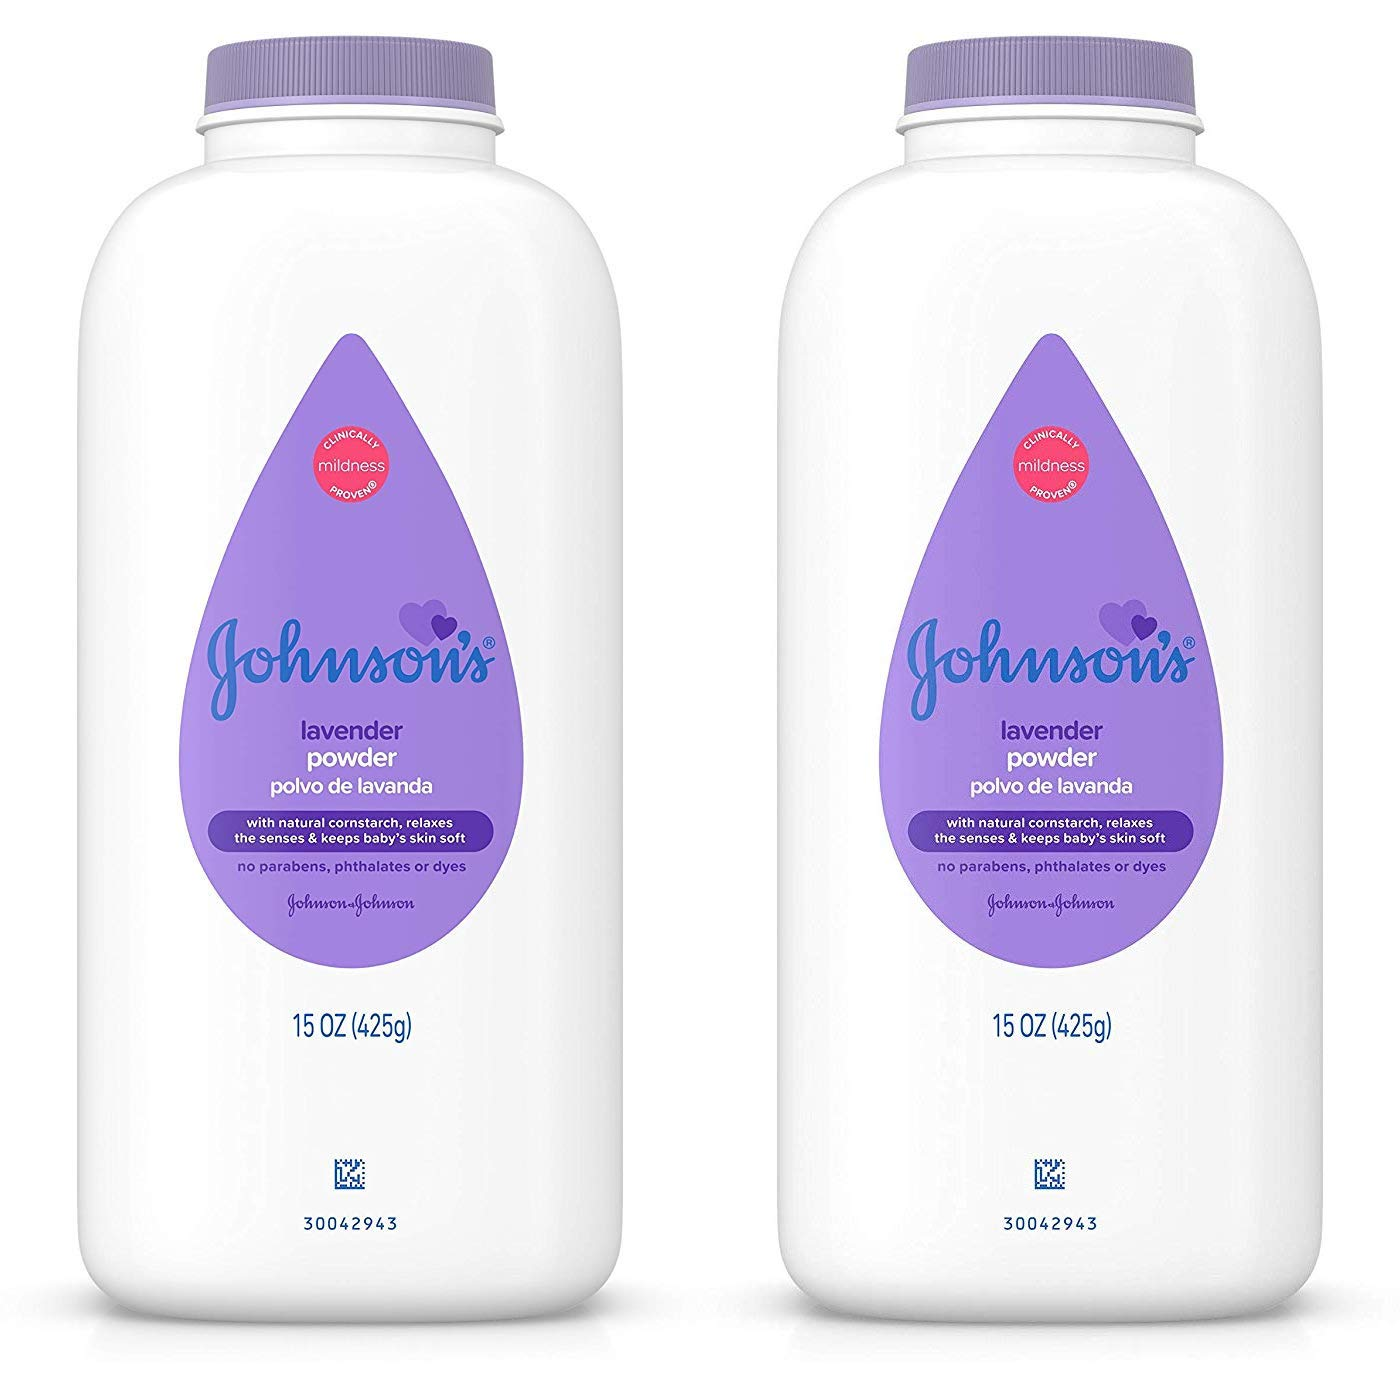 Johnson's Baby Powder, Lavender 15 oz (425 g)(pack of 2) by Johnson's Baby